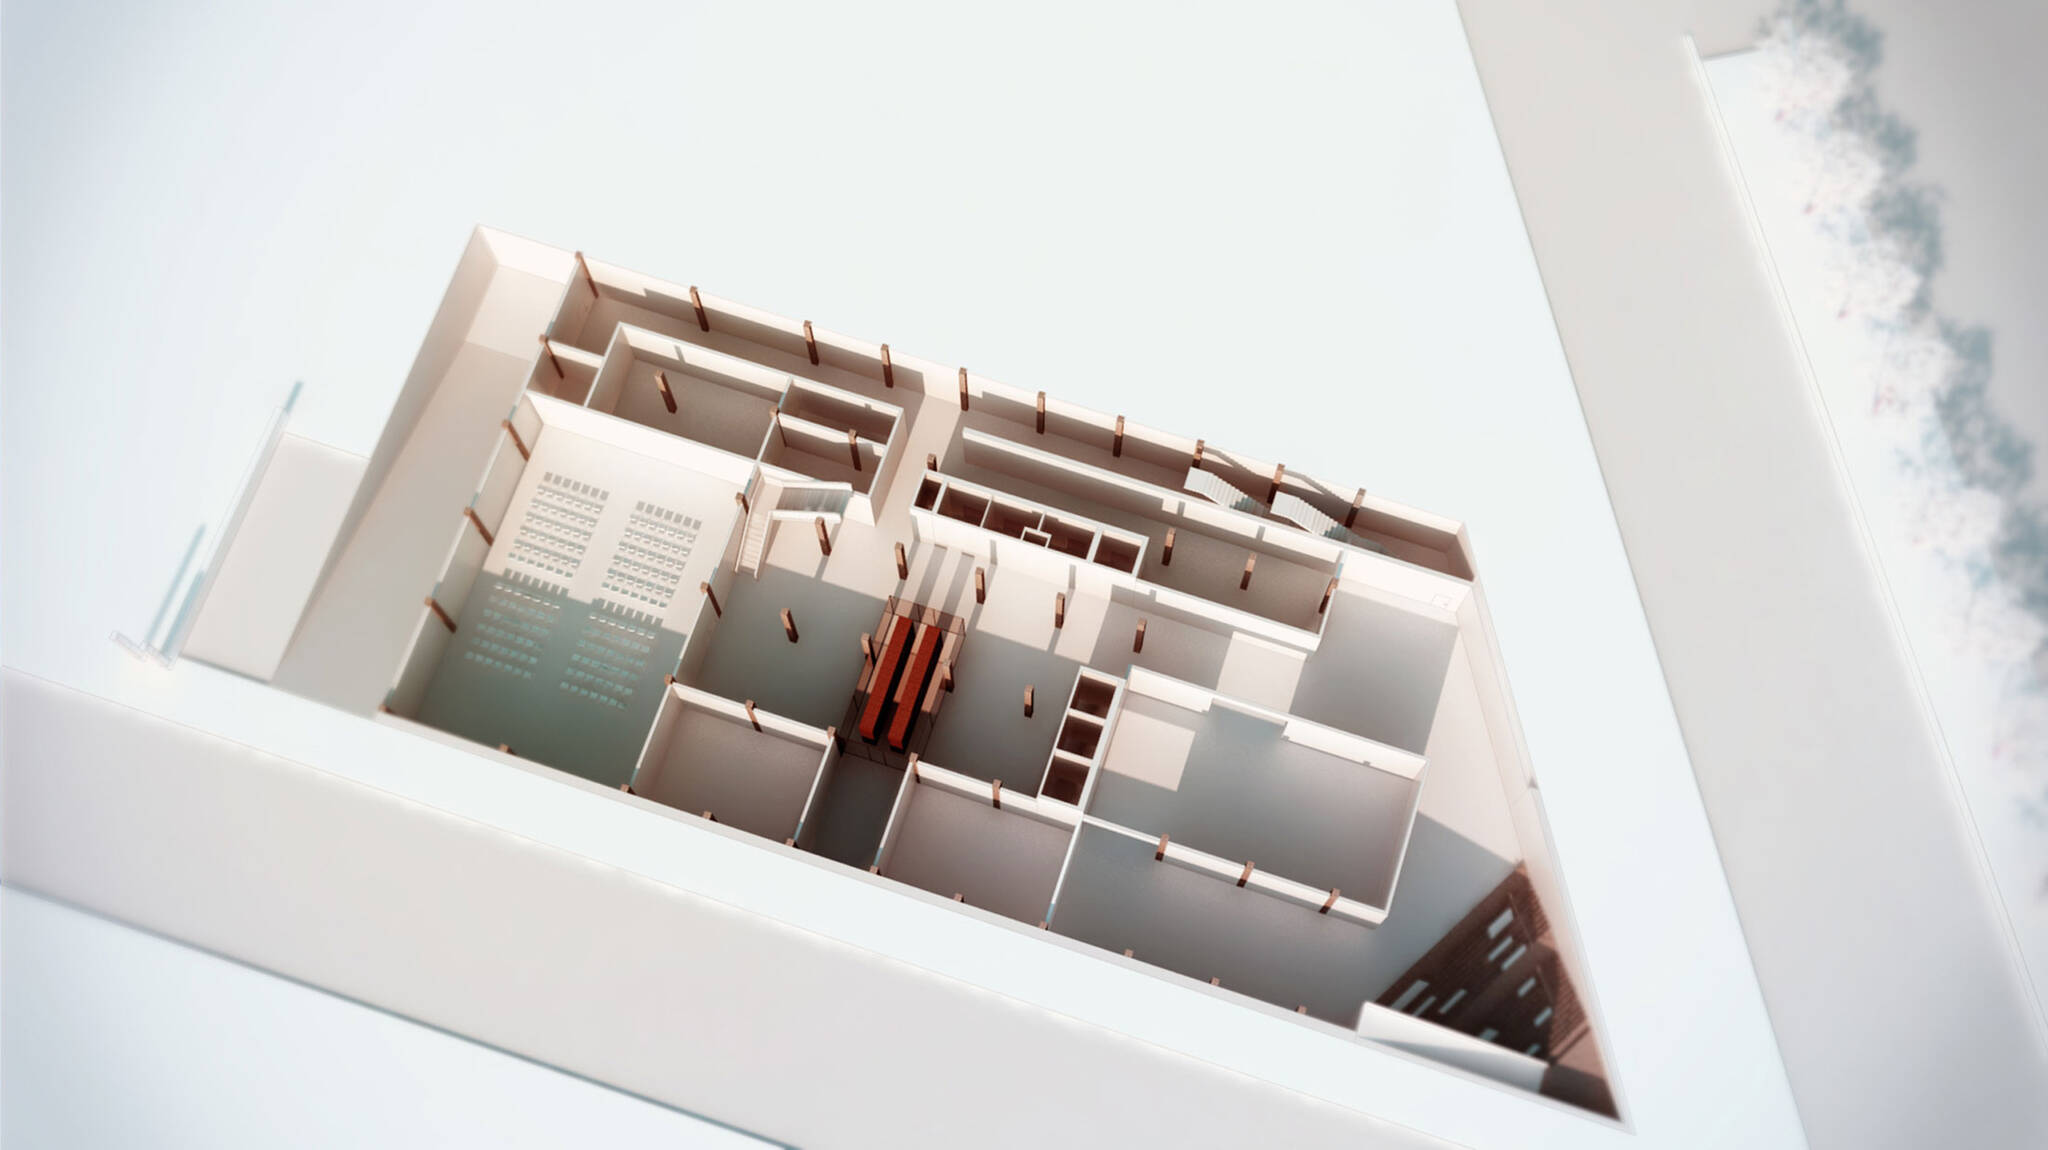 3D floor plan of the American Bible Society project located at the Upper West Side, New York City designed by the architecture studio Danny Forster & Architecture